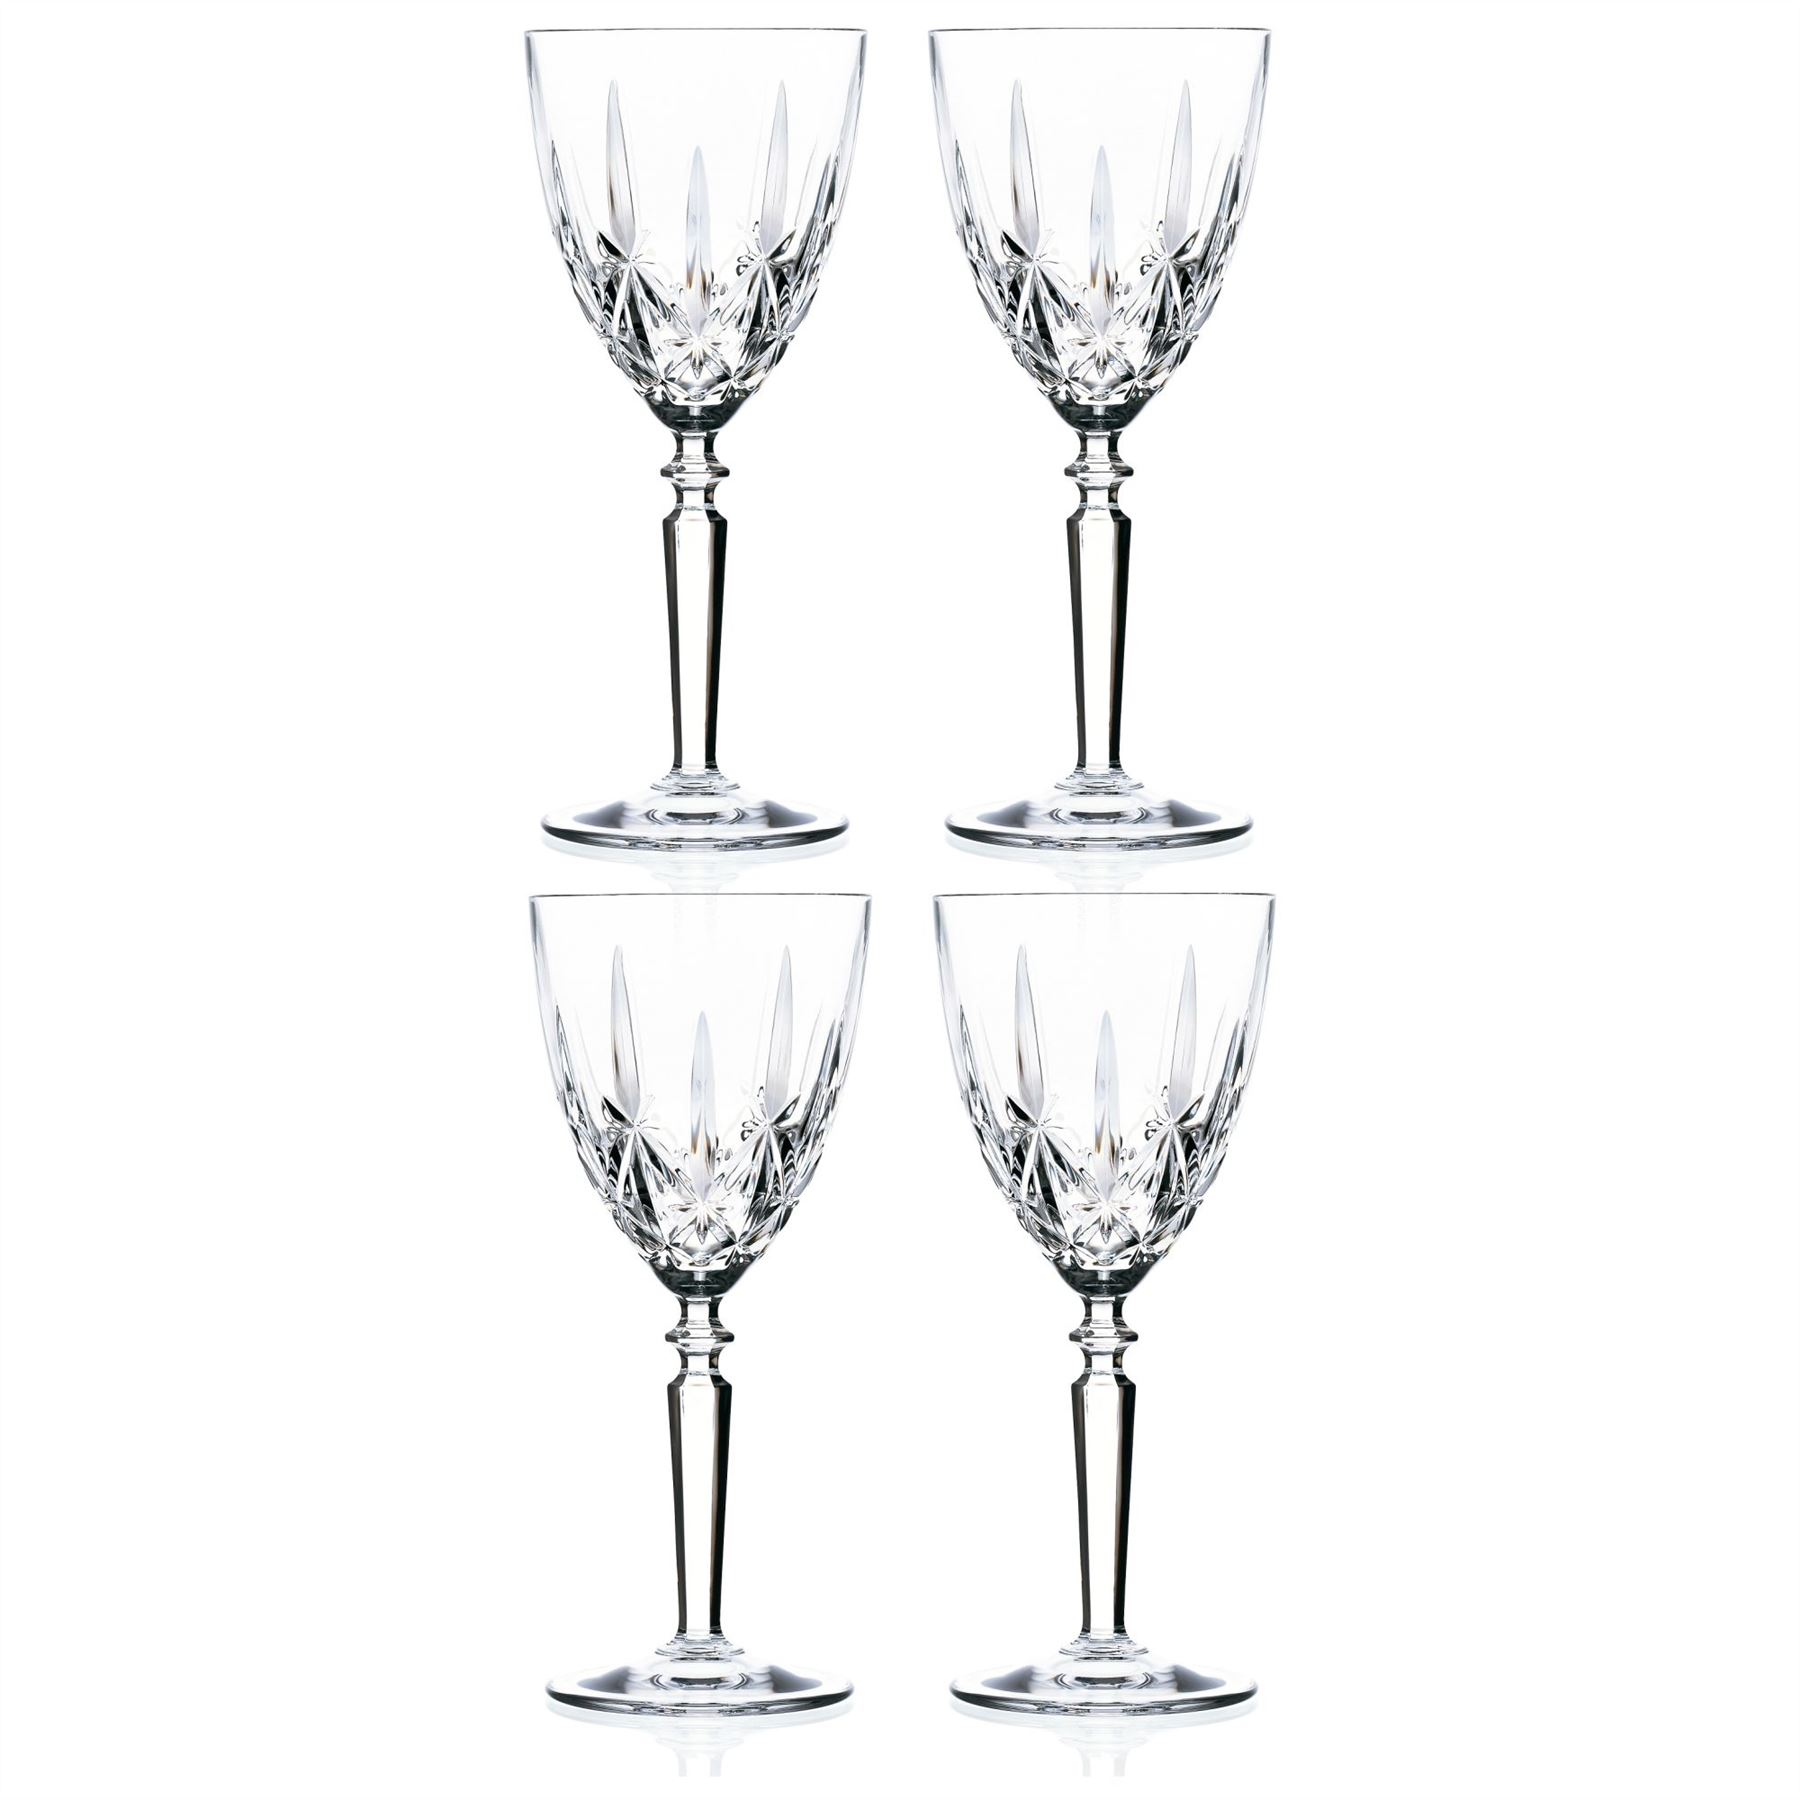 Rcr Crystal Orchestra Wine Glasses Red White Drinking